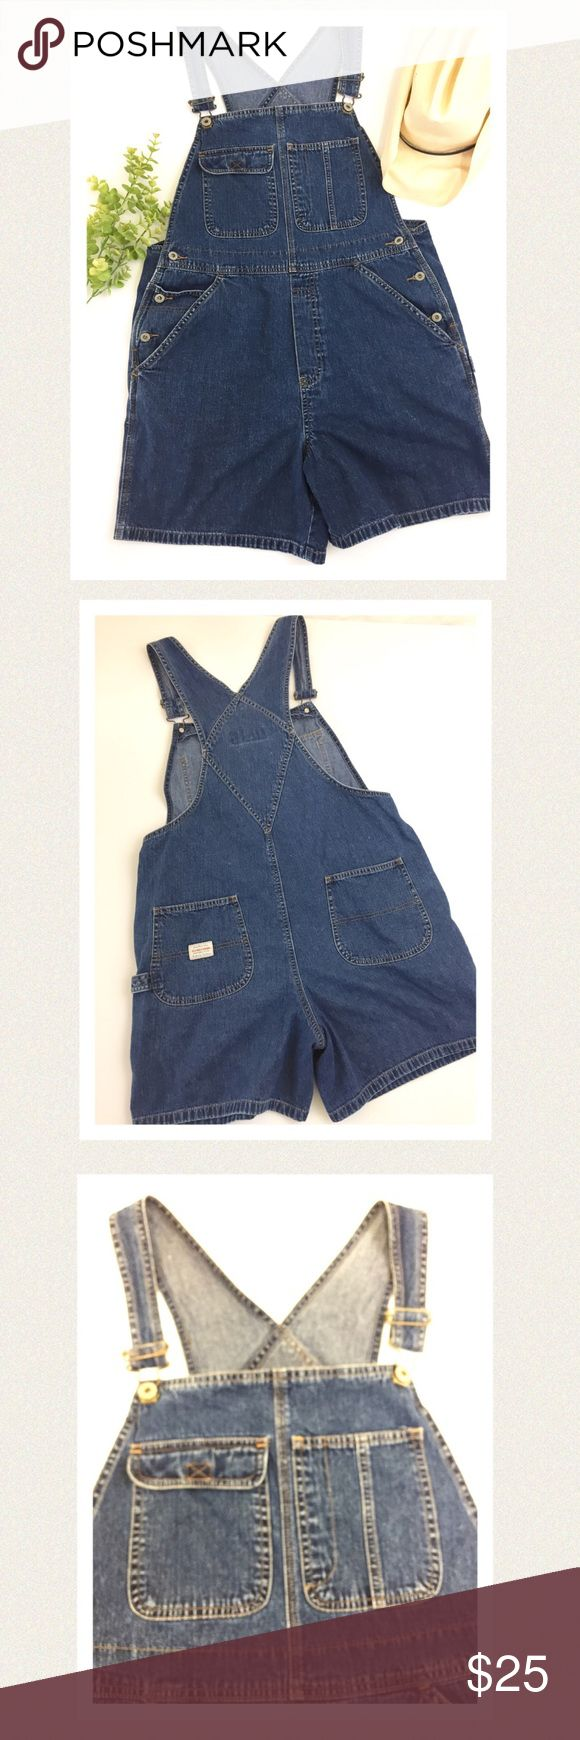 "🆕 Old Navy denim jean overalls So cute and comfy! These adorable denim overalls have detailed stitching on pockets in front and back. Perfect condition. Great for those early spring days. 🔹Length from top of bib to hem 27.5"" 🔹Bib length 11"" 🔹Waist area  38"" 🔹Hip area 43"" 🔹Inseam 6"" 🔹Strap longest length from V in back to end of clasp is 17"" Can be shortened, straps adjustable🔹All measurements are approximate Old Navy Jeans Overalls"